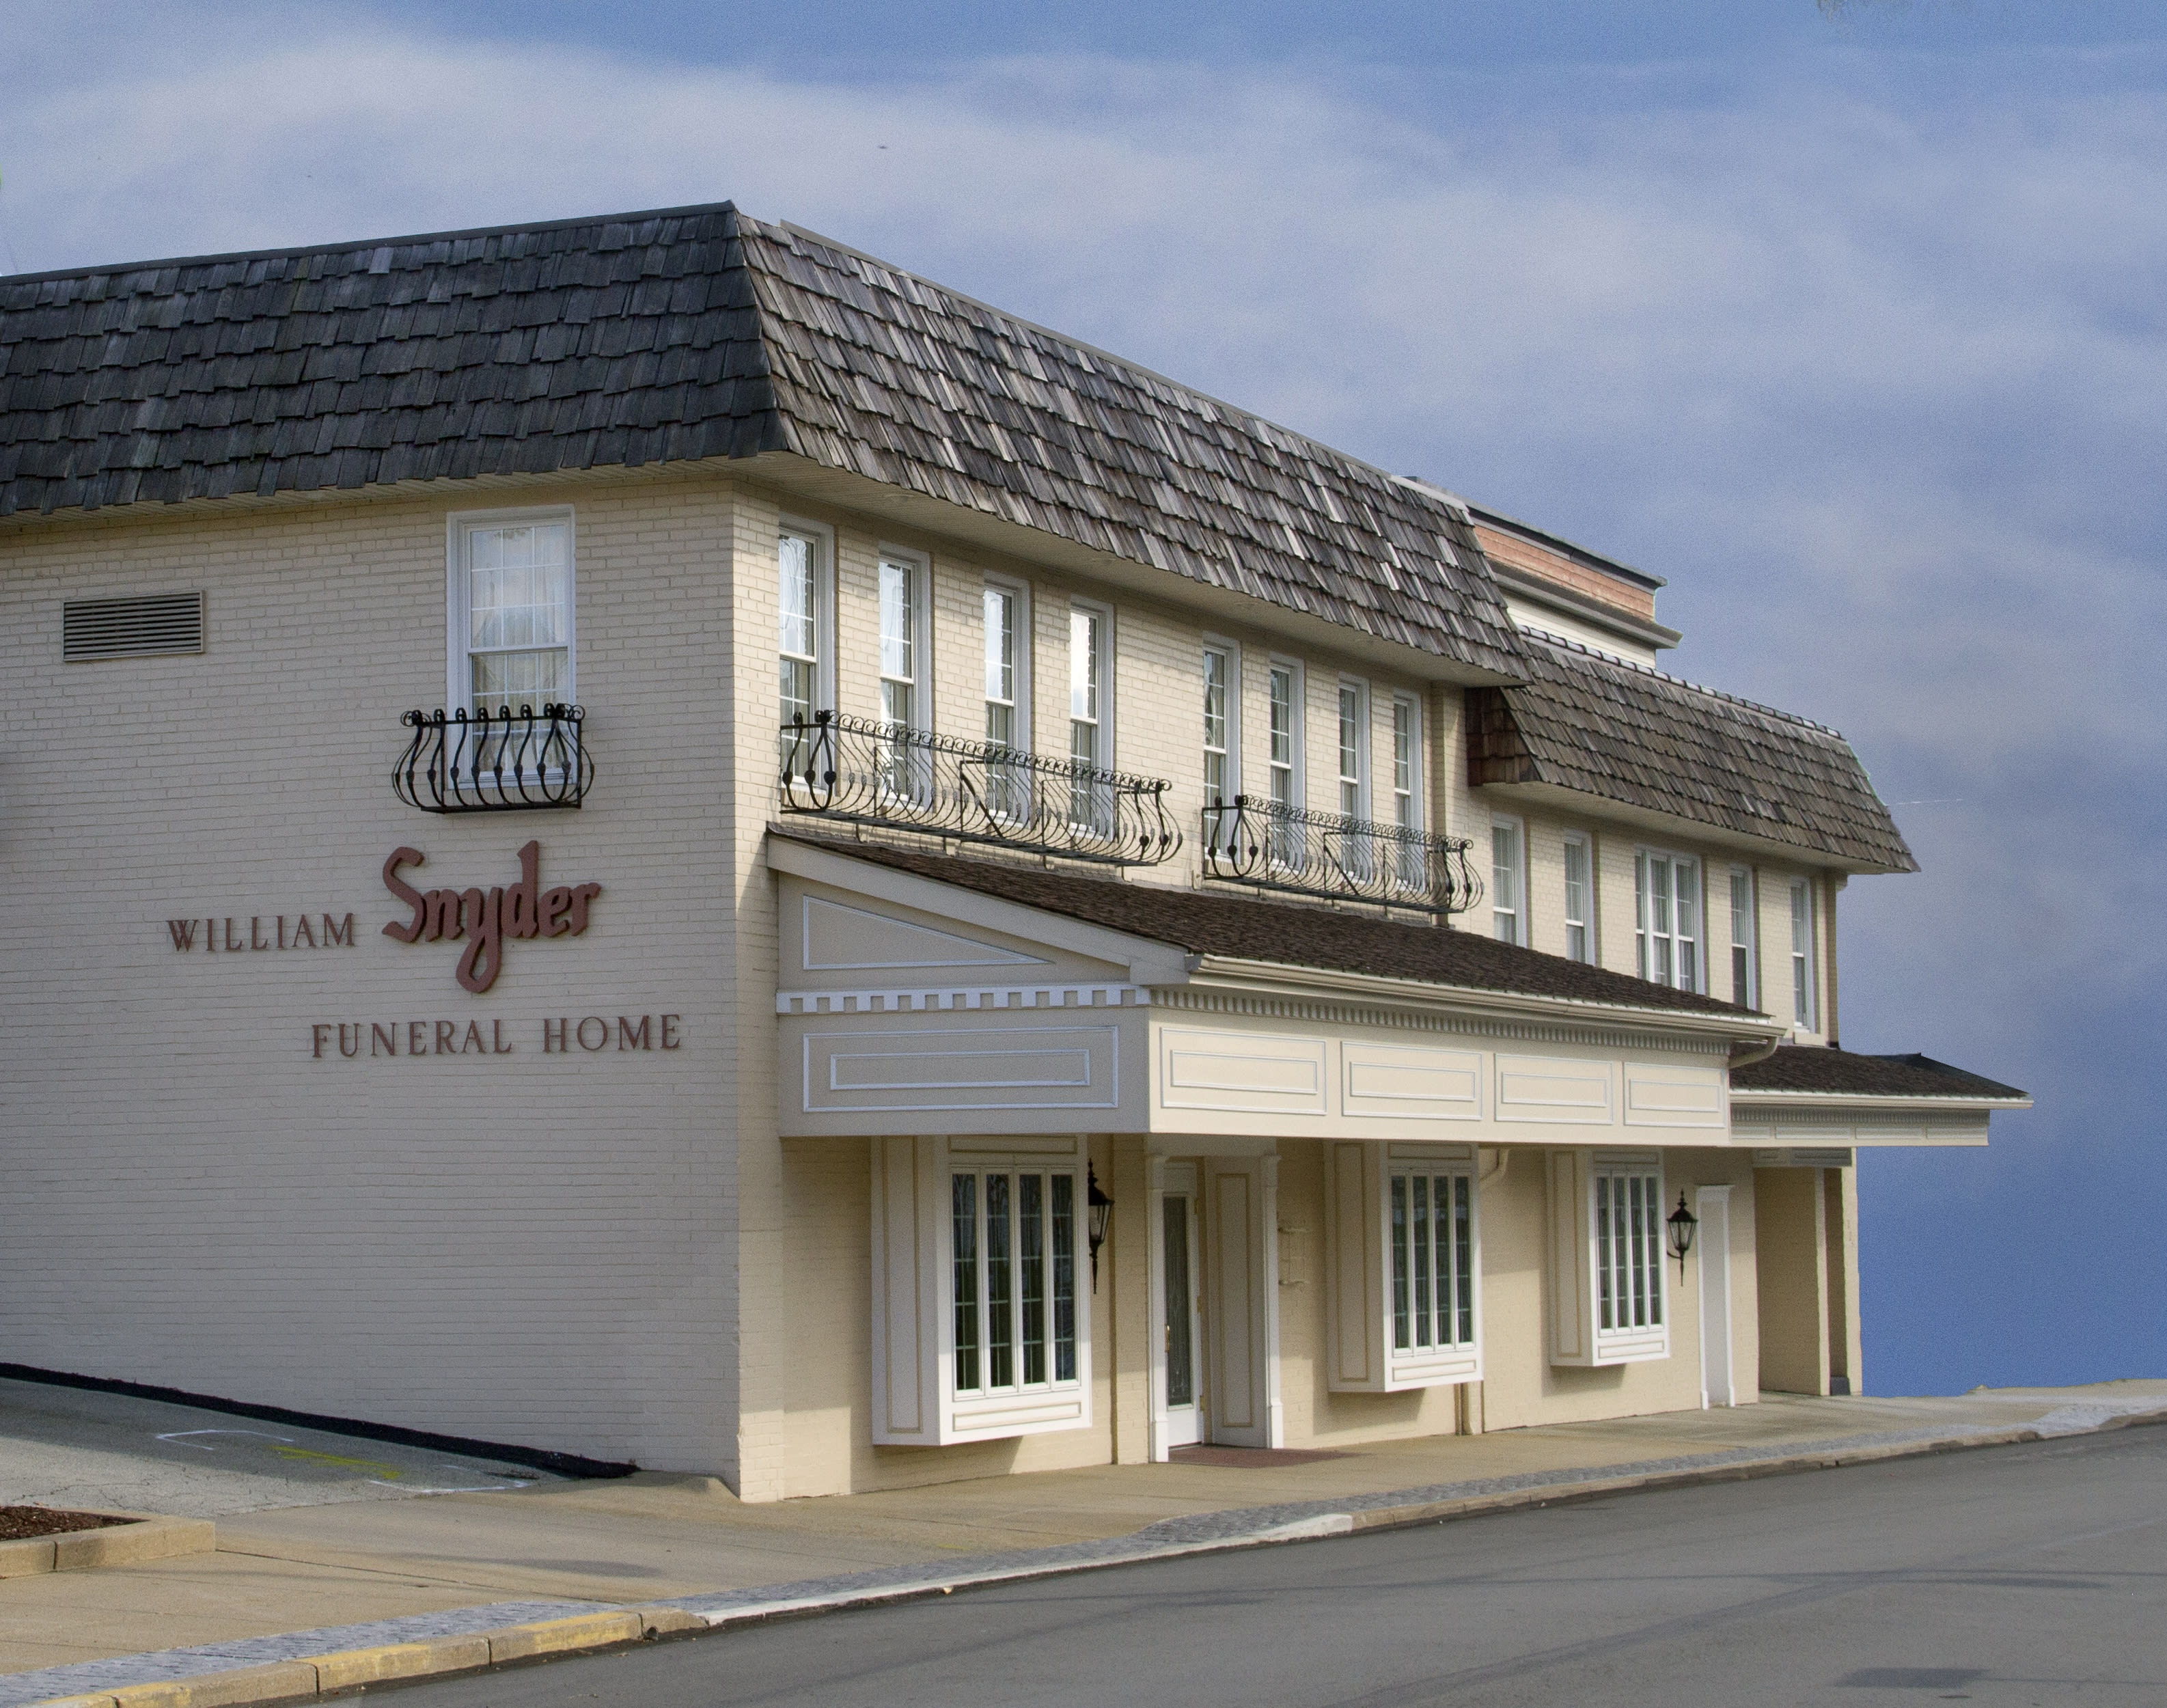 William Snyder Funeral Home - Irwin, PA